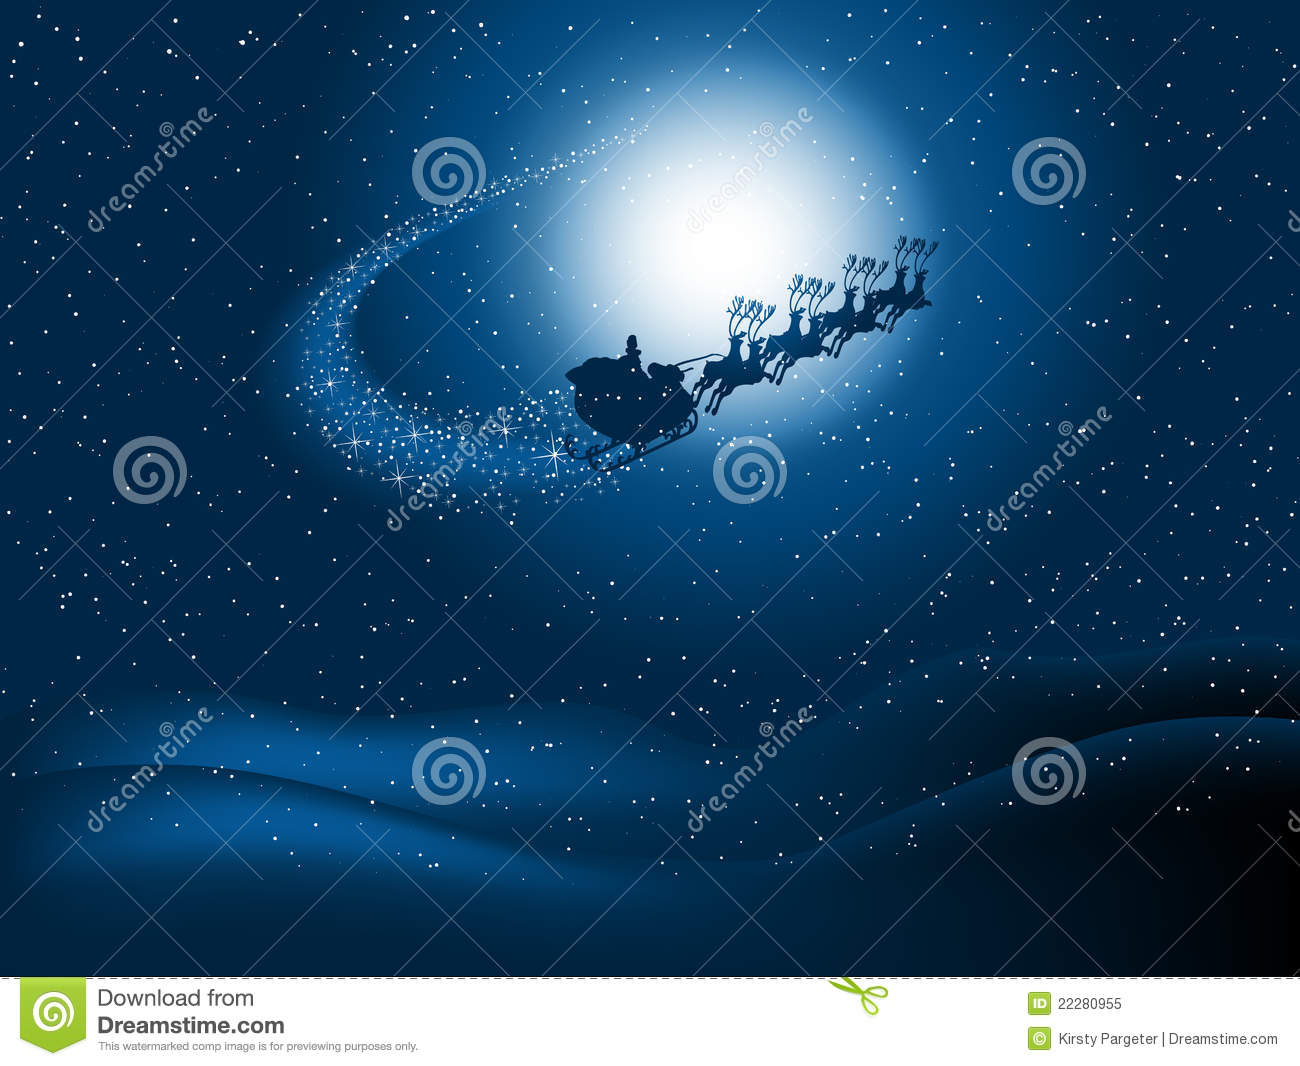 Animated Weather Wallpaper Iphone Santa In The Night Sky Royalty Free Stock Photo Image